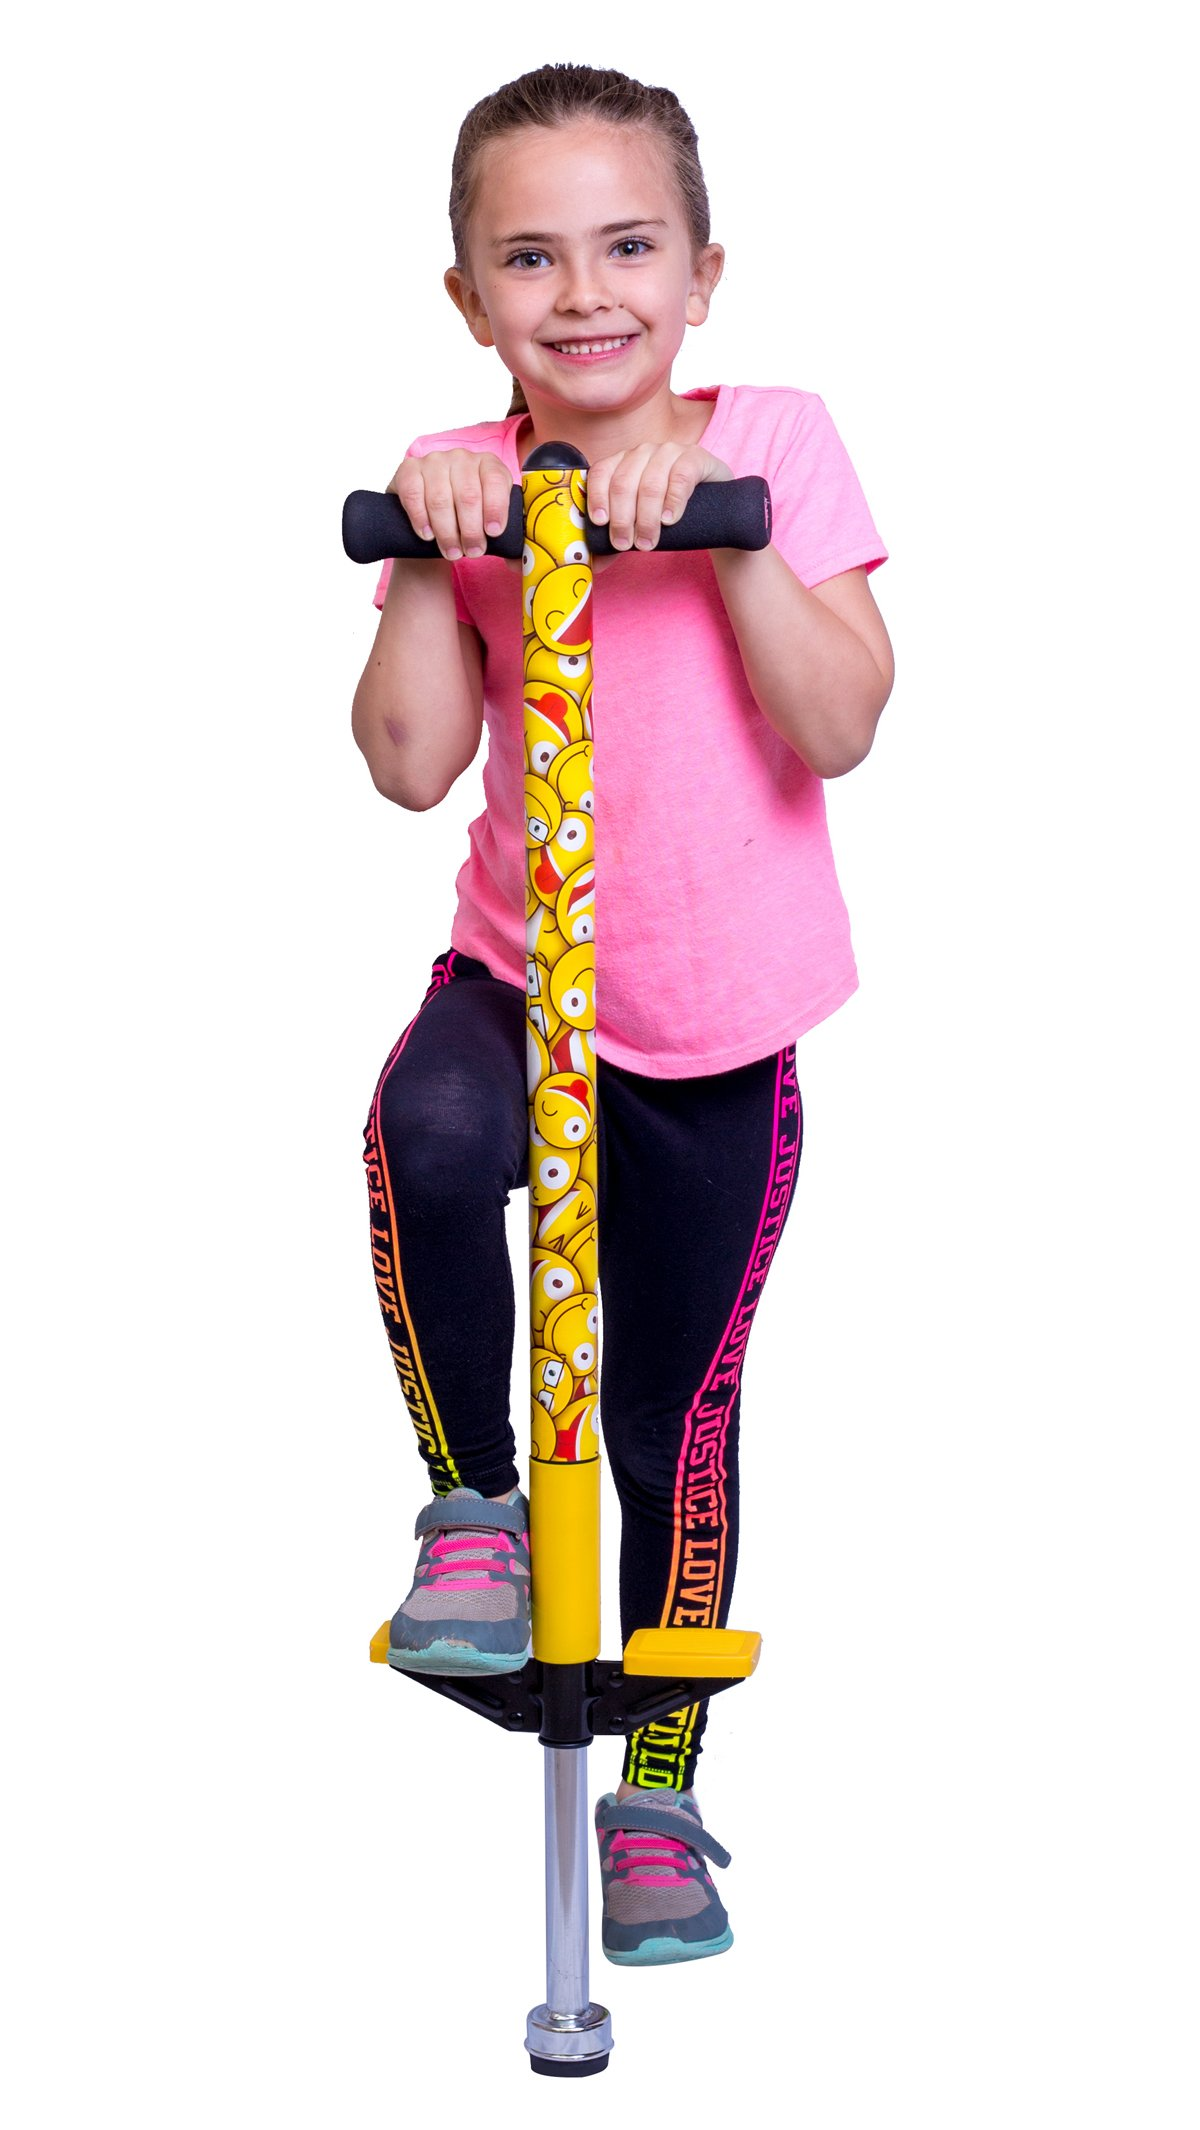 PLENY Emoji Pogo Stick for Kids 5,6,7,8,9,10 Years Old - Weight 50 to 110 Lbs